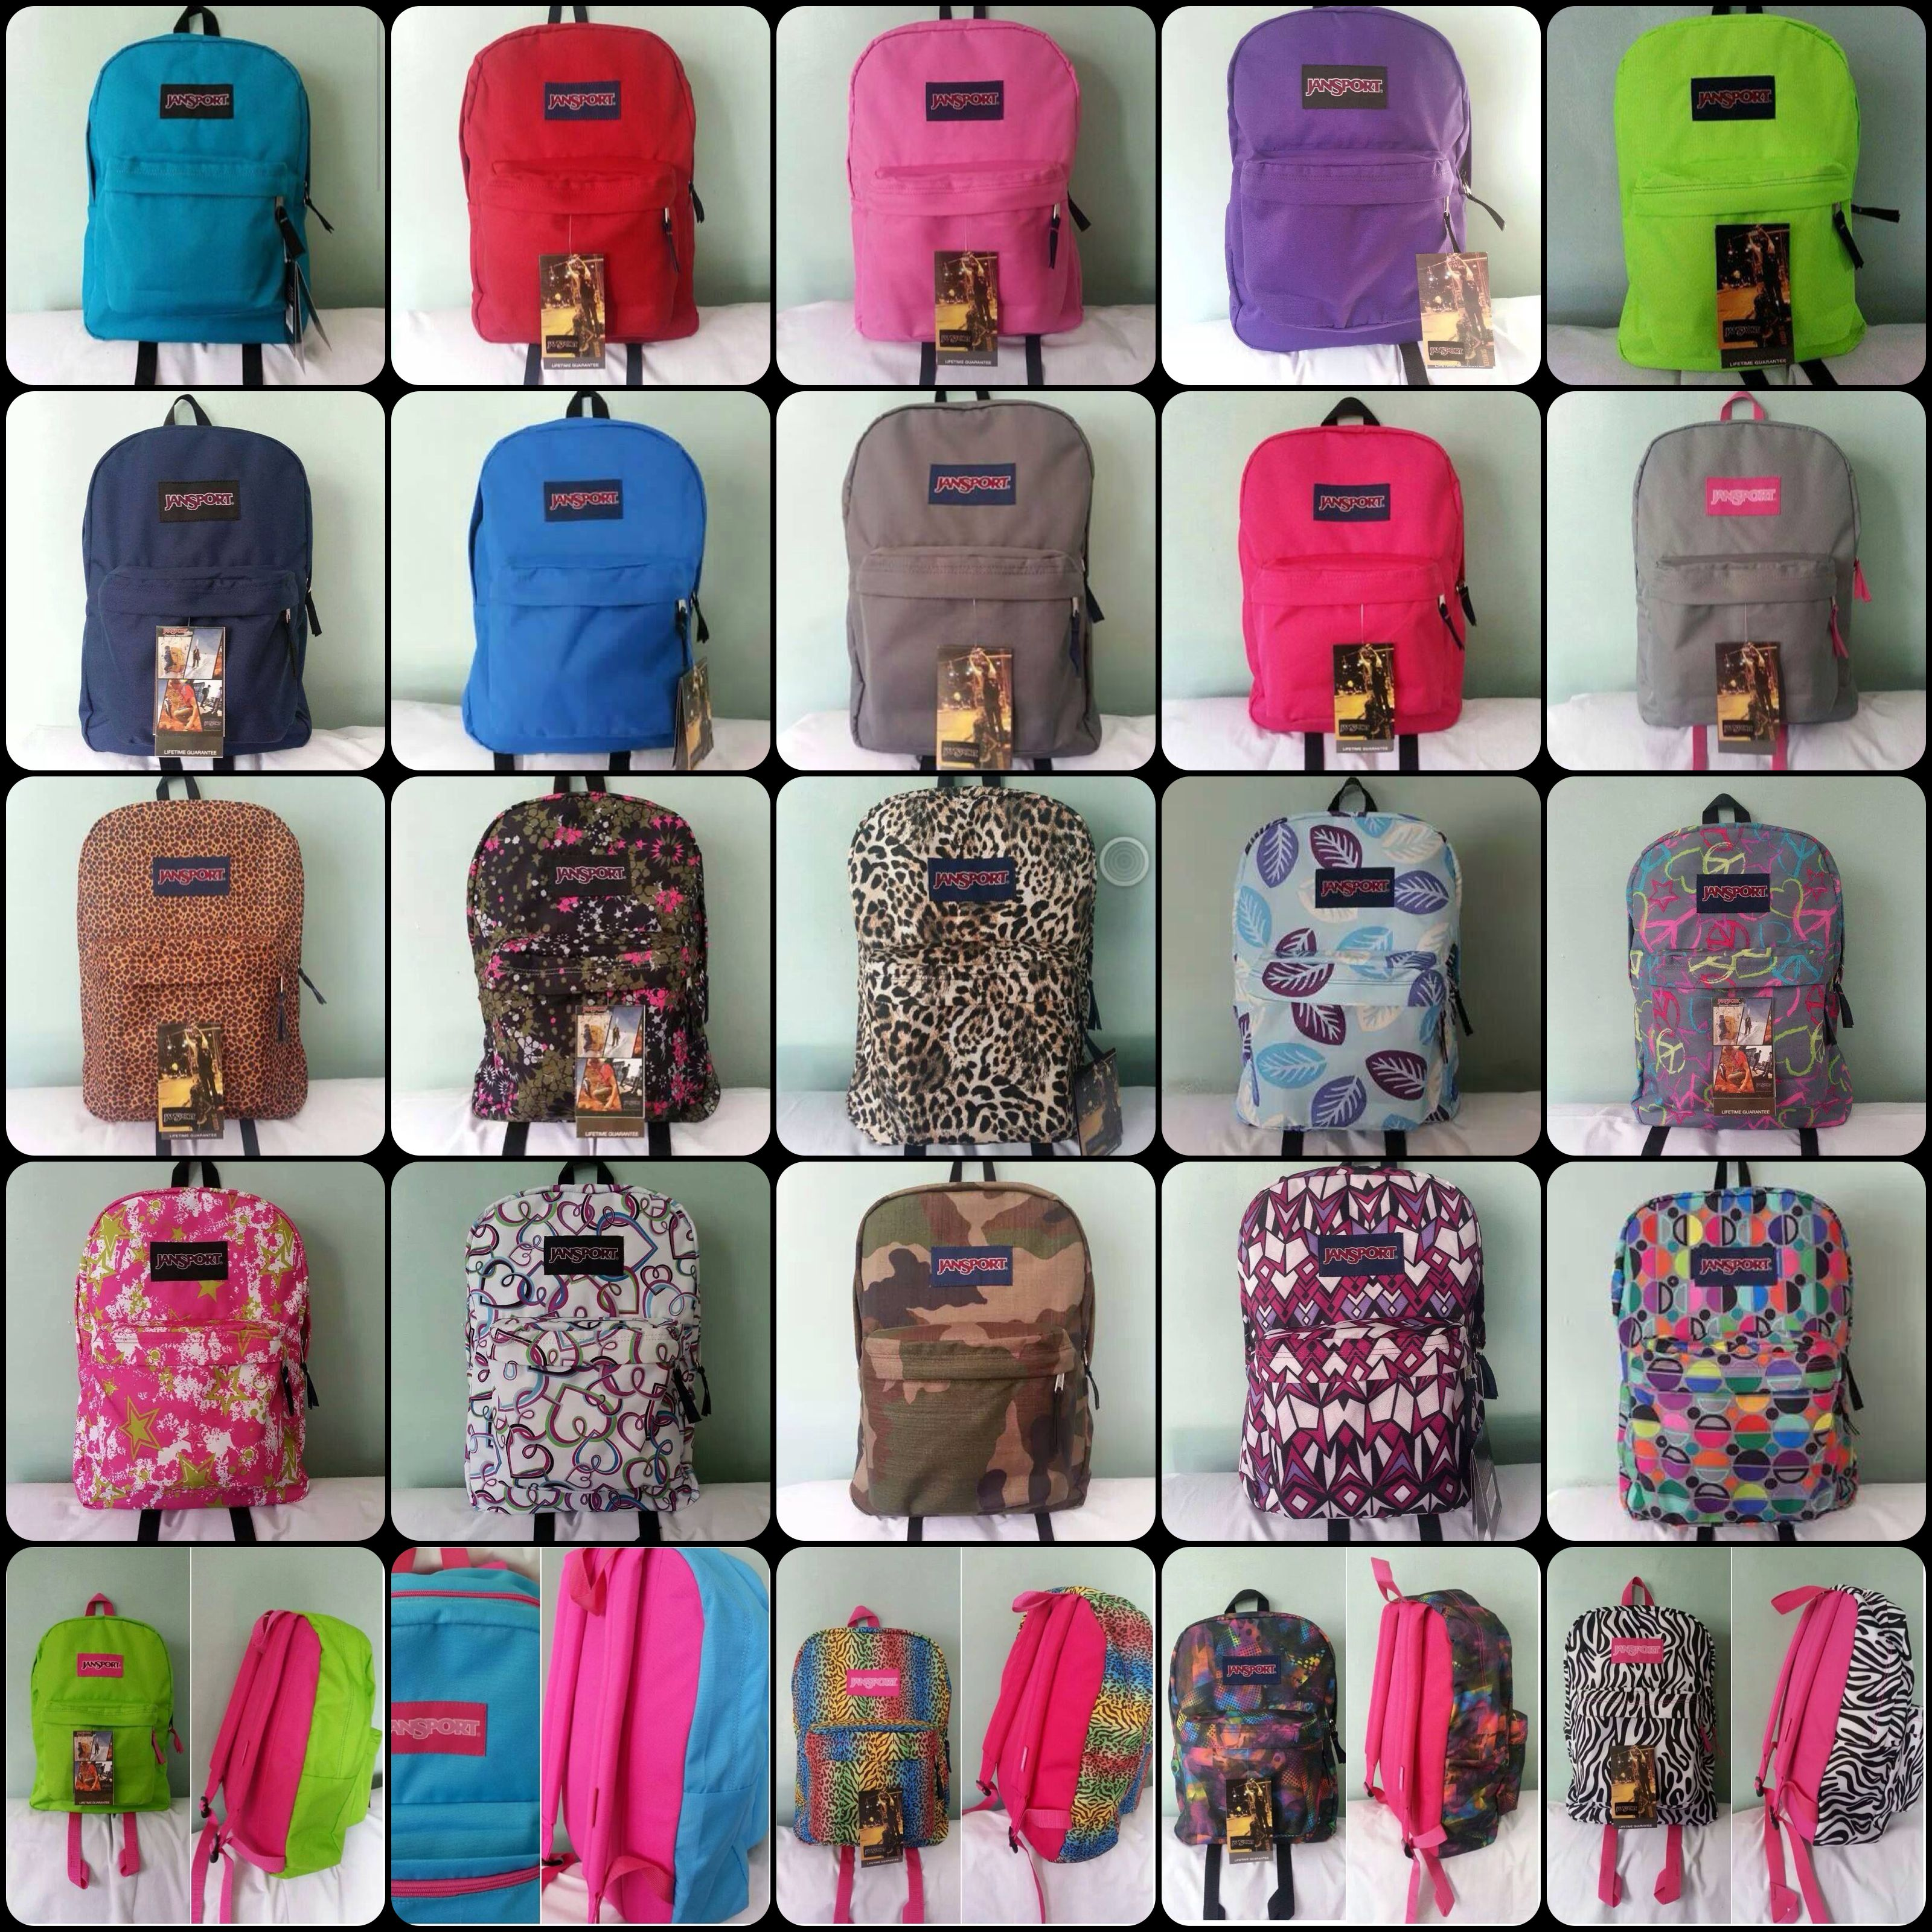 For Sale Original Jansport Bag From Factory Outlet Lower Price Accessories Lil Break Glitter Hearts More Inquiries Contact Us Thru Viber 09162144858 Or Sms 09234498484 09236062475